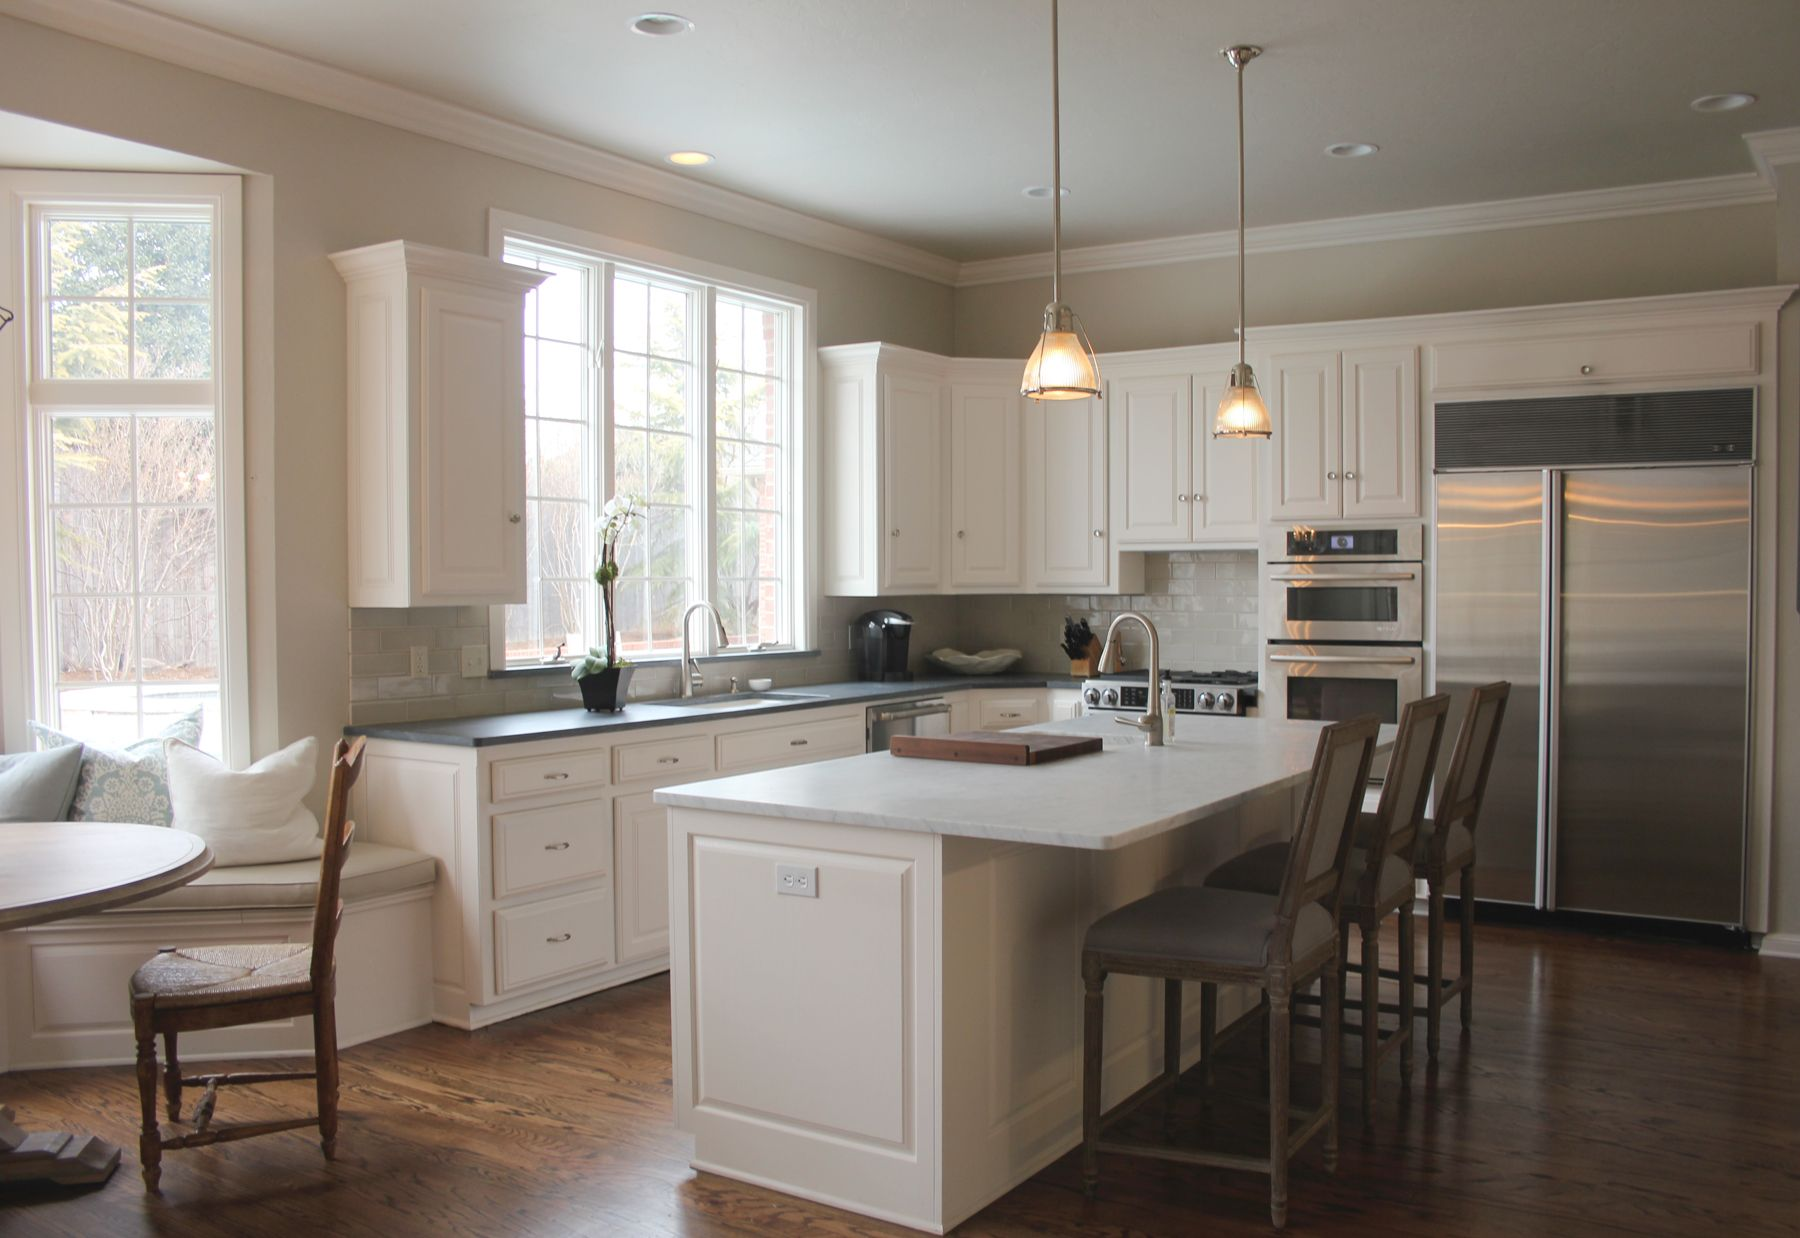 Benjamin Moore Kitchen Cabinet Colors Revere Pewter Kitchen Wall Color Benjamin Moore Revere